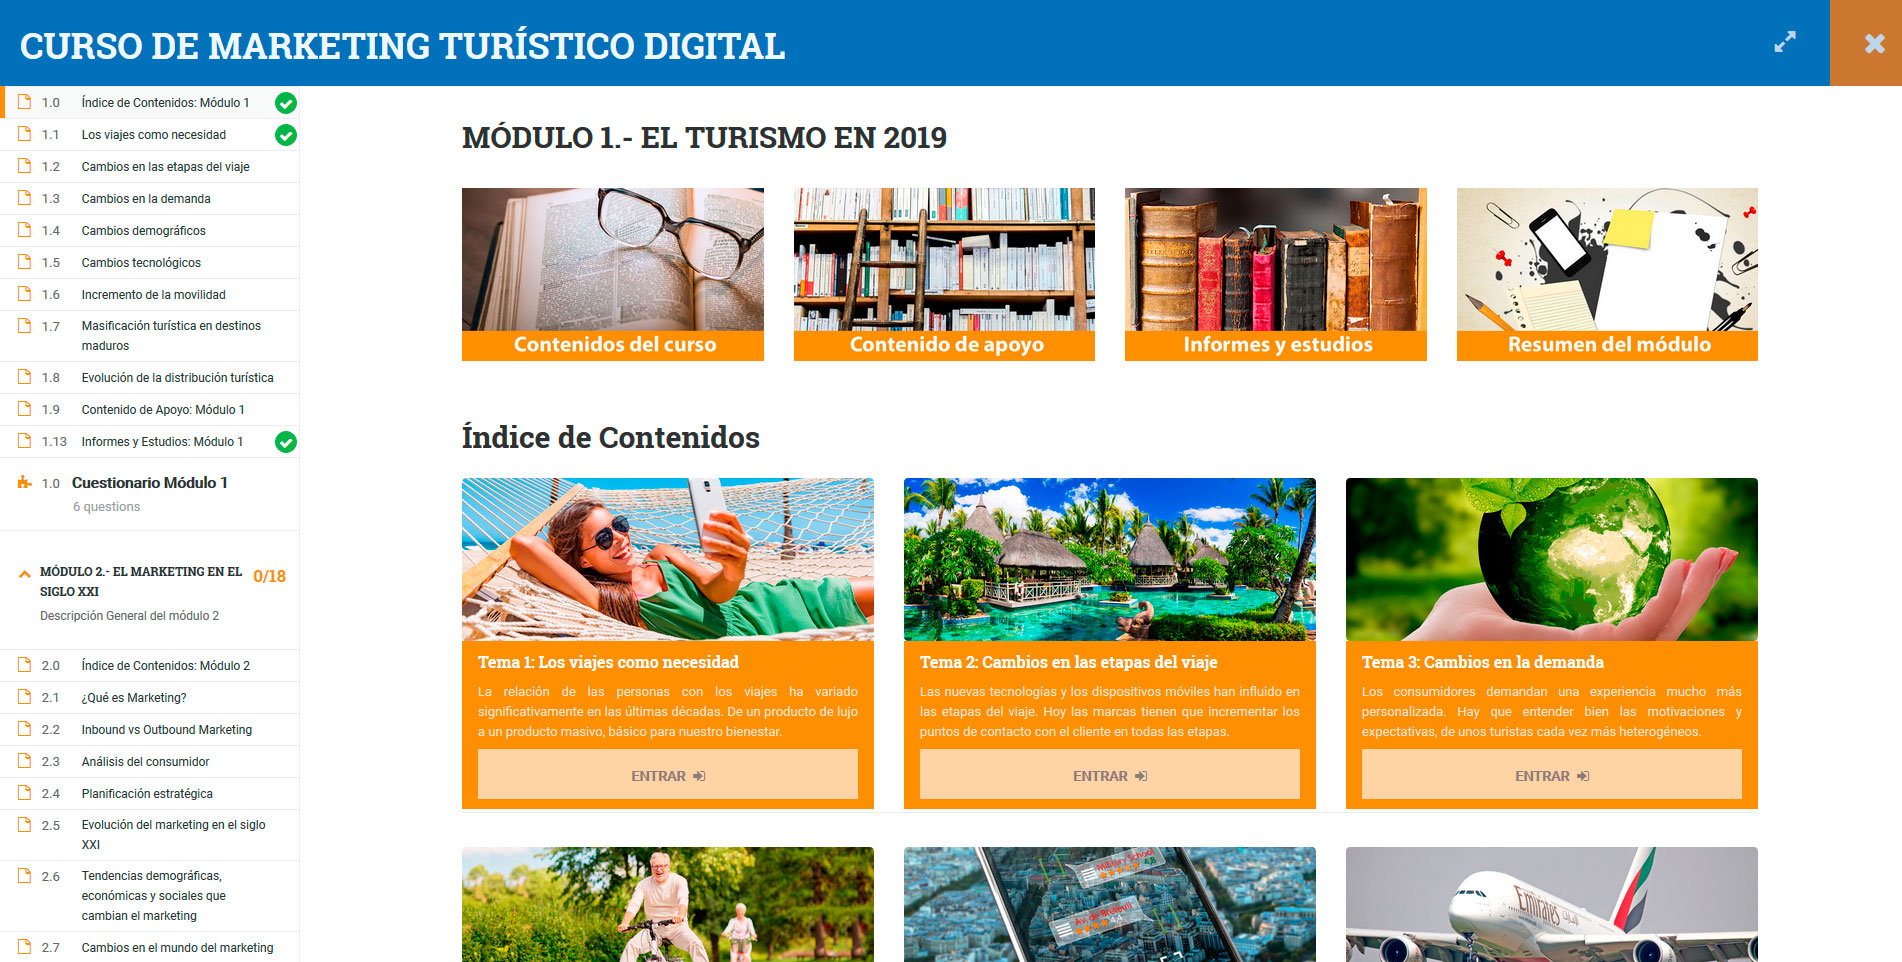 marketing_turistico_digital_captura3